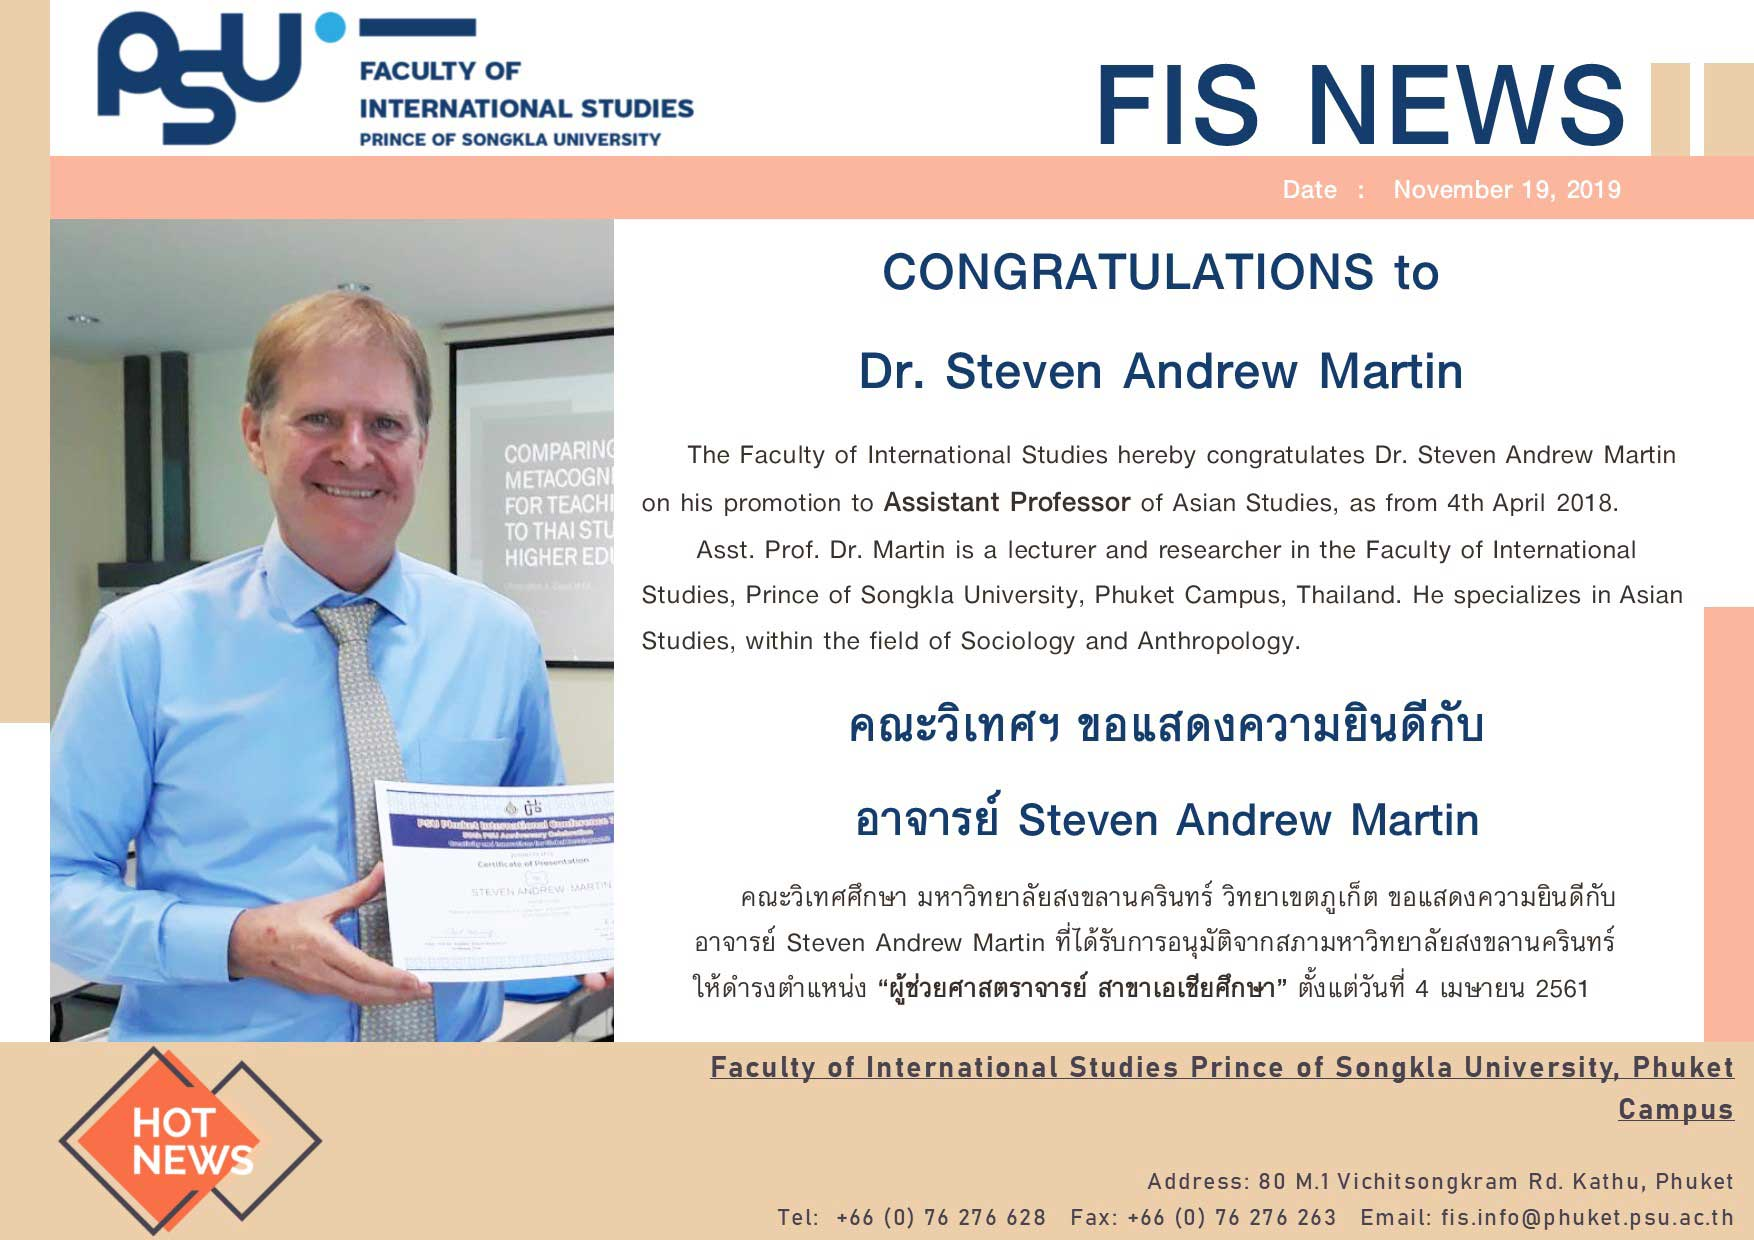 The Faculty of International Studies hereby congratulates Dr. Steven Andrew Martin on his promotion to Assistant Professor of Asian Studies